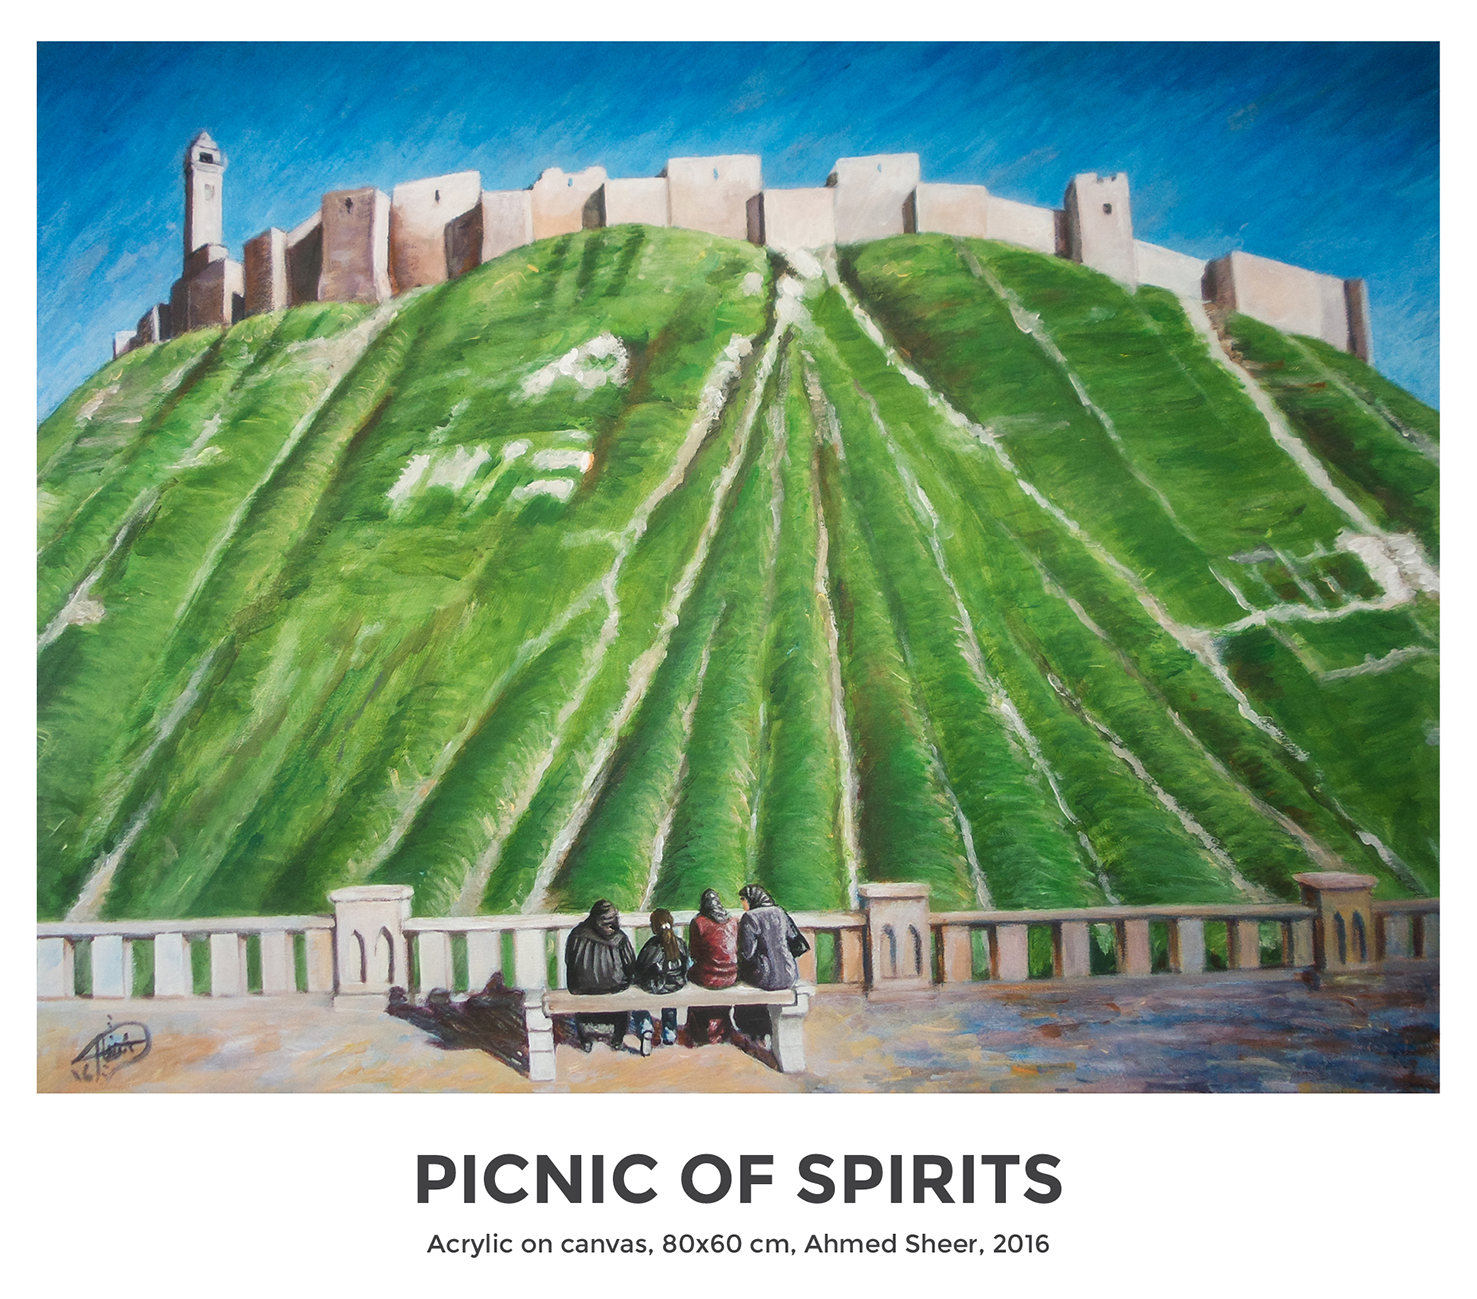 Picnic of Spirits